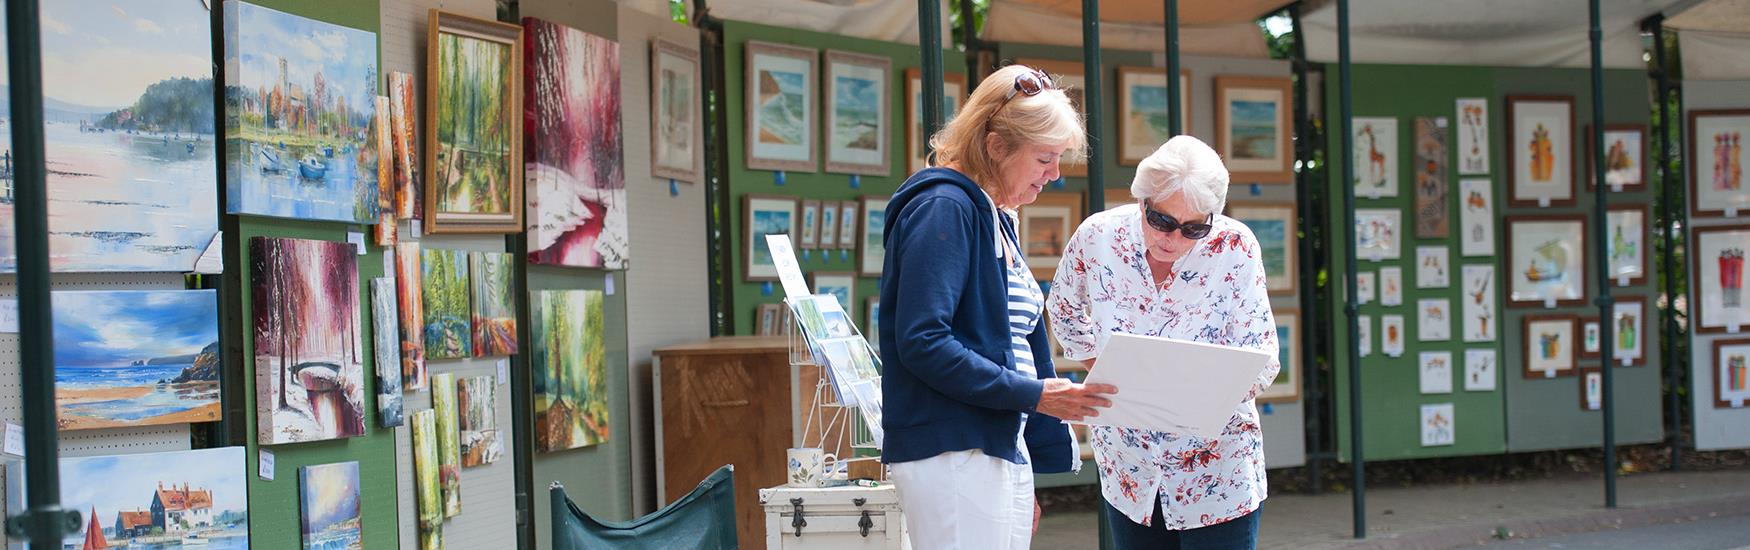 Two women exploring the Pine walk market in Bournemouth